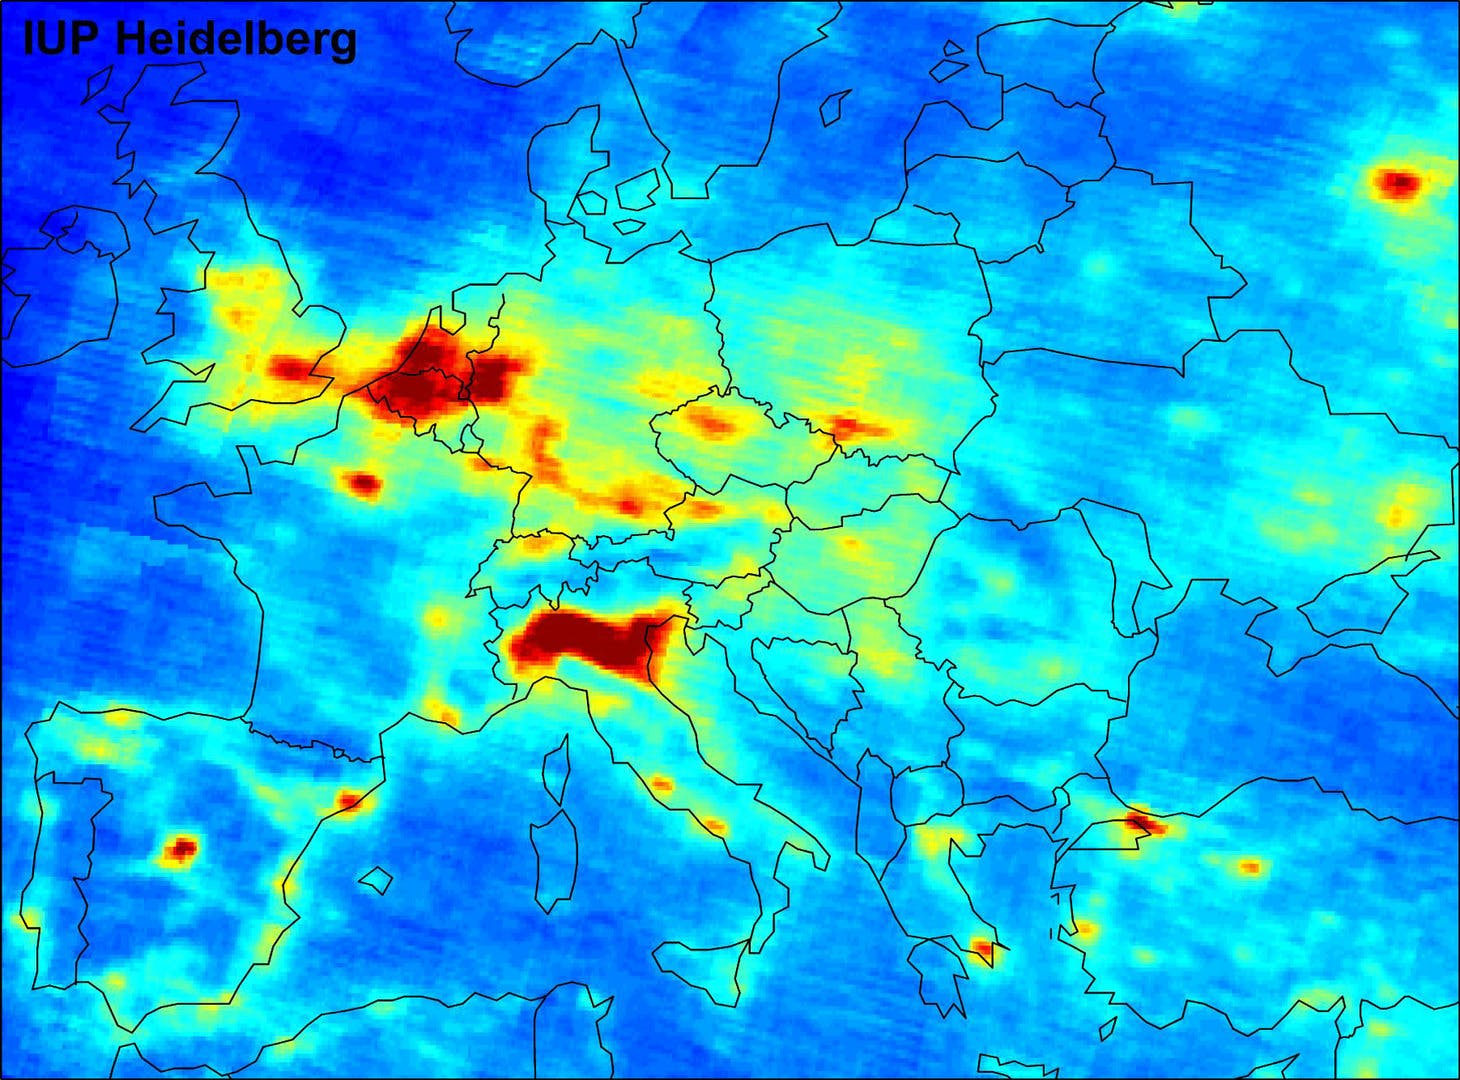 Po valley, the worst area in Europe for air quality